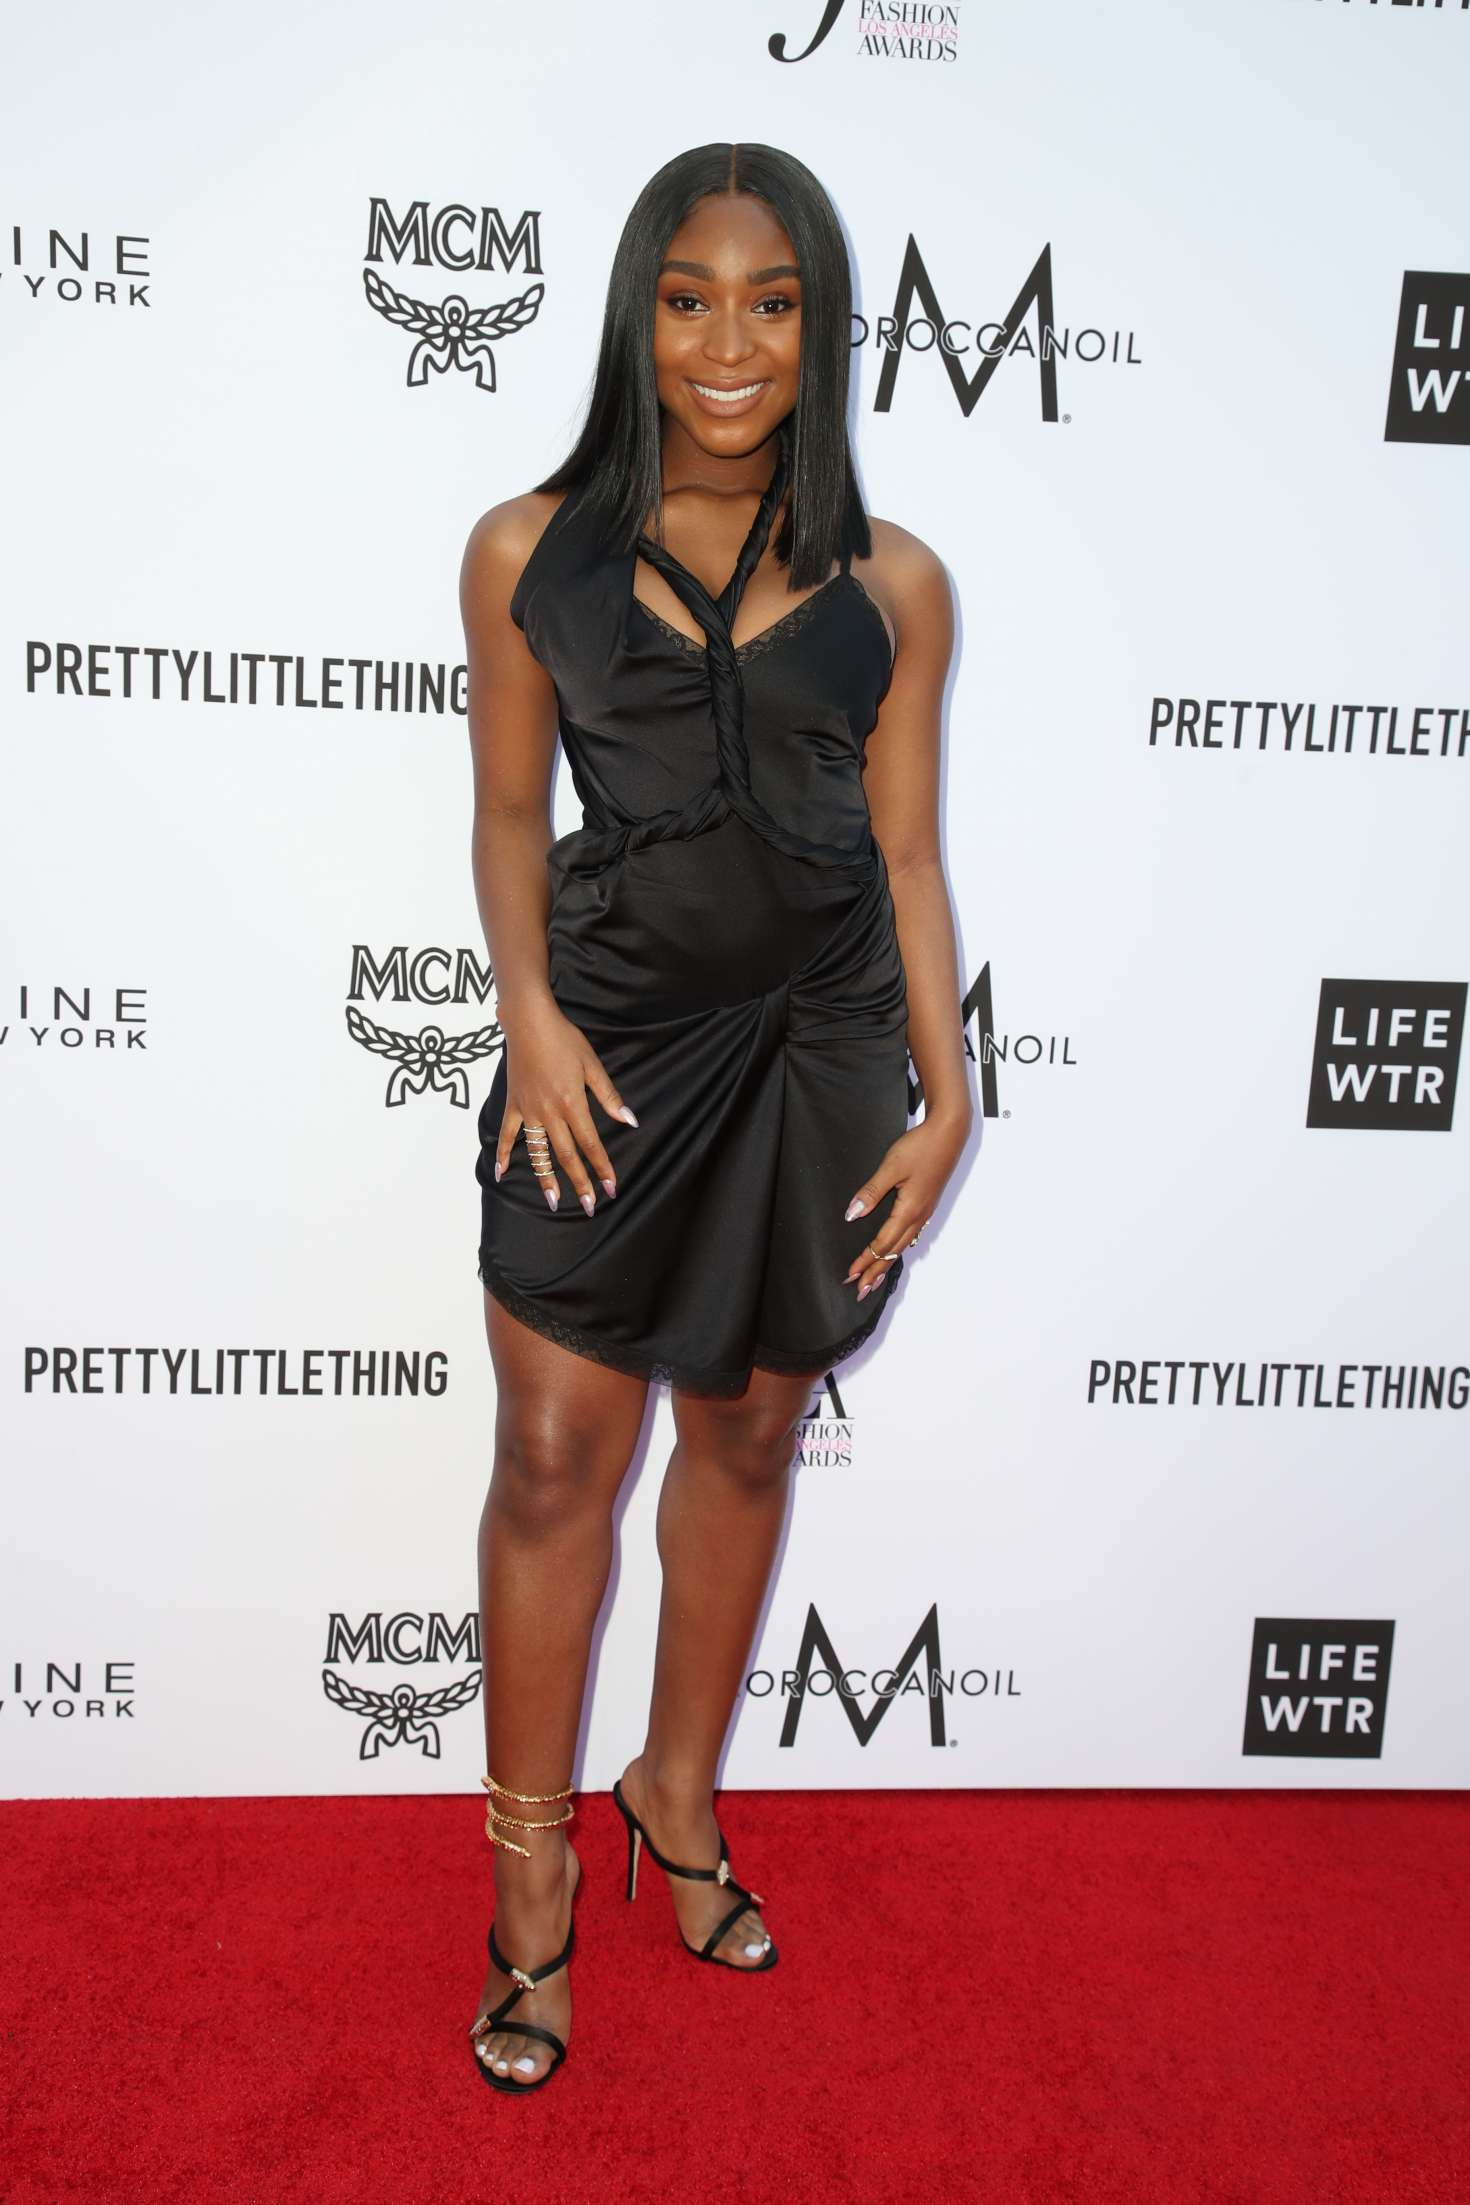 Normani Kordei - 2018 Fashion Los Angeles Awards in LA